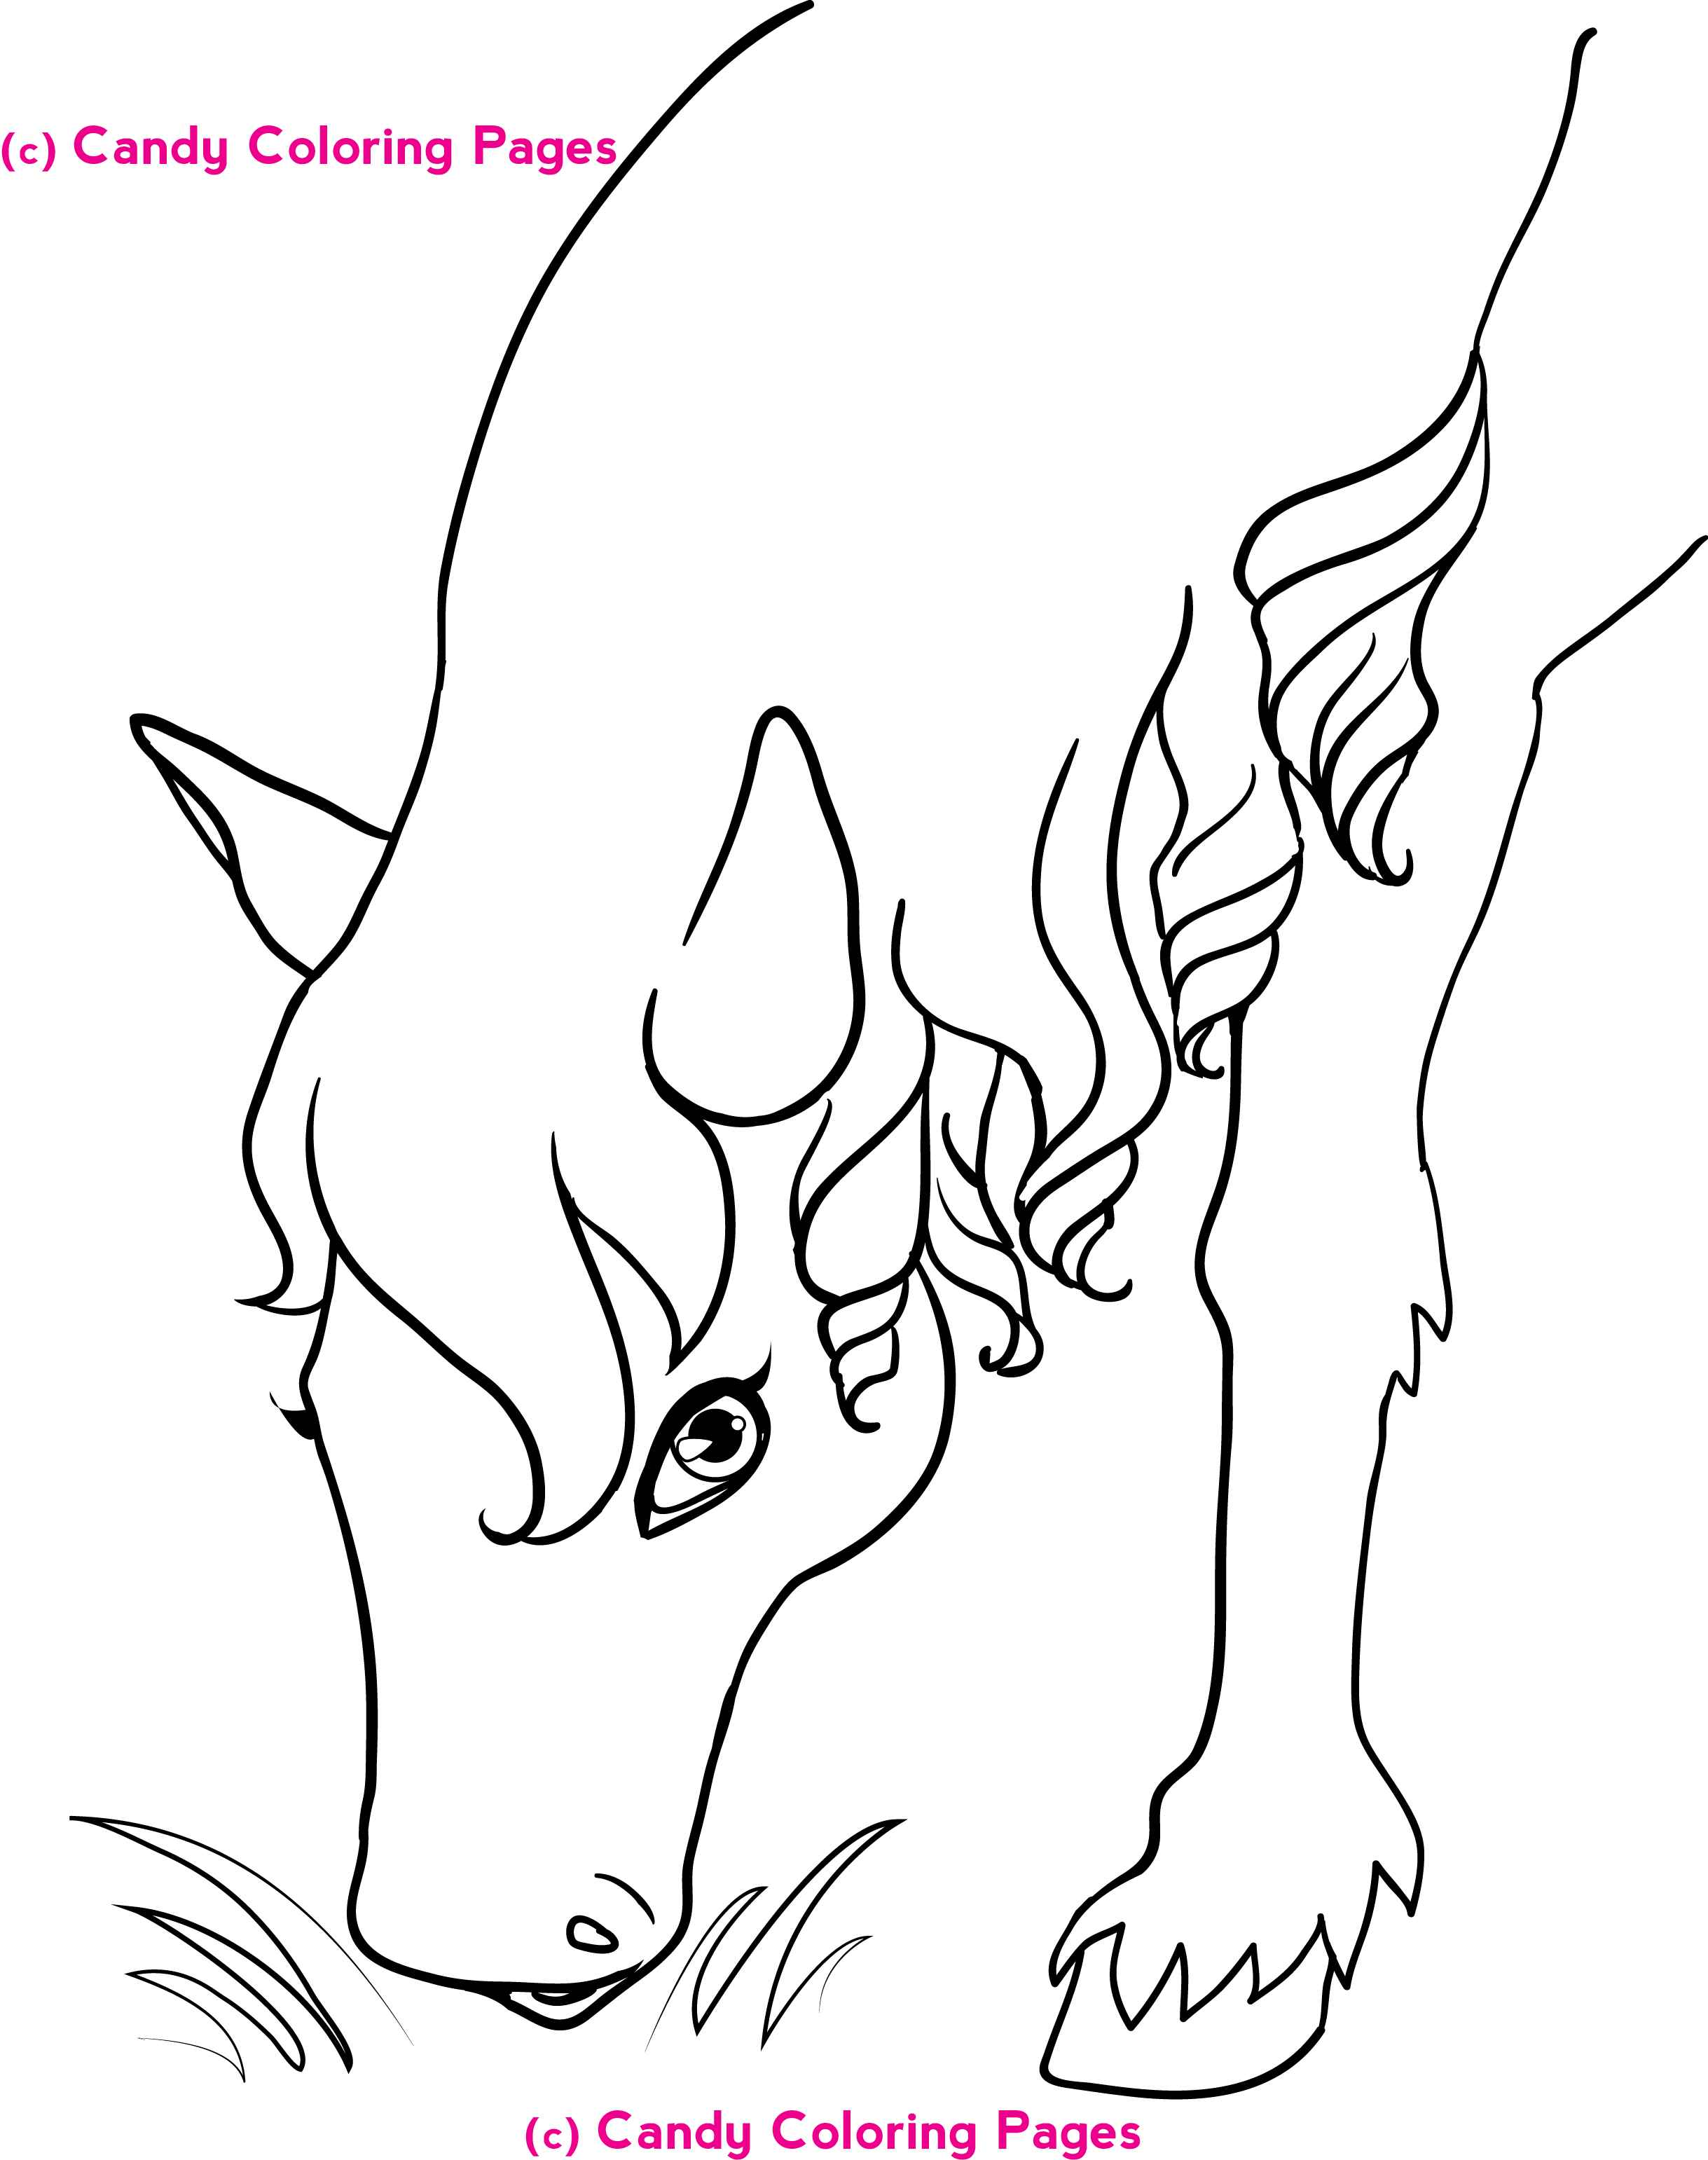 3rd grade math coloring pages2343